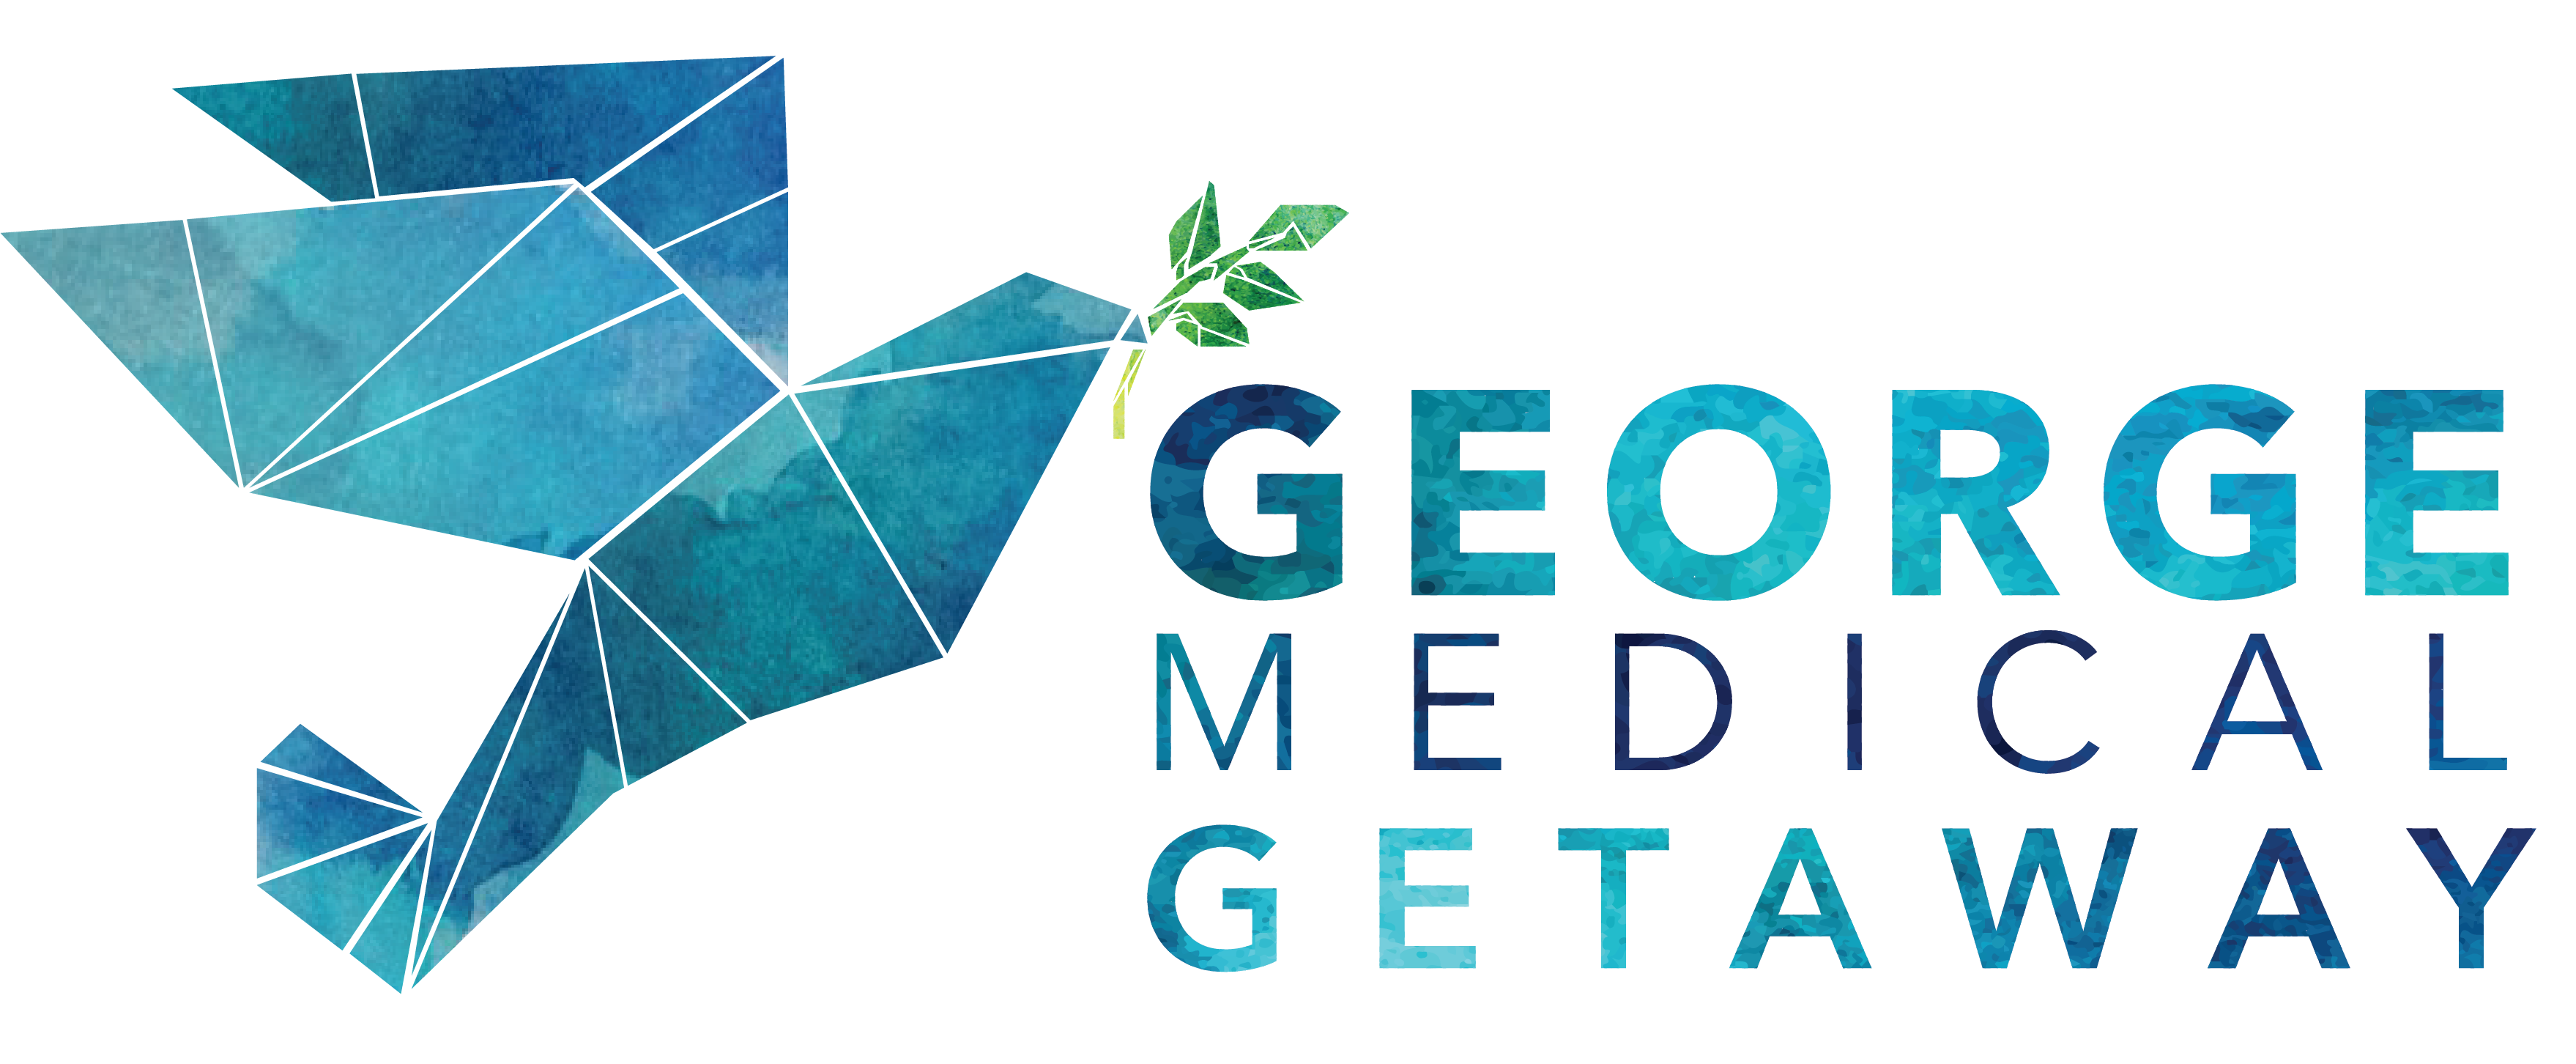 George Medical Getaway (1148401-A)